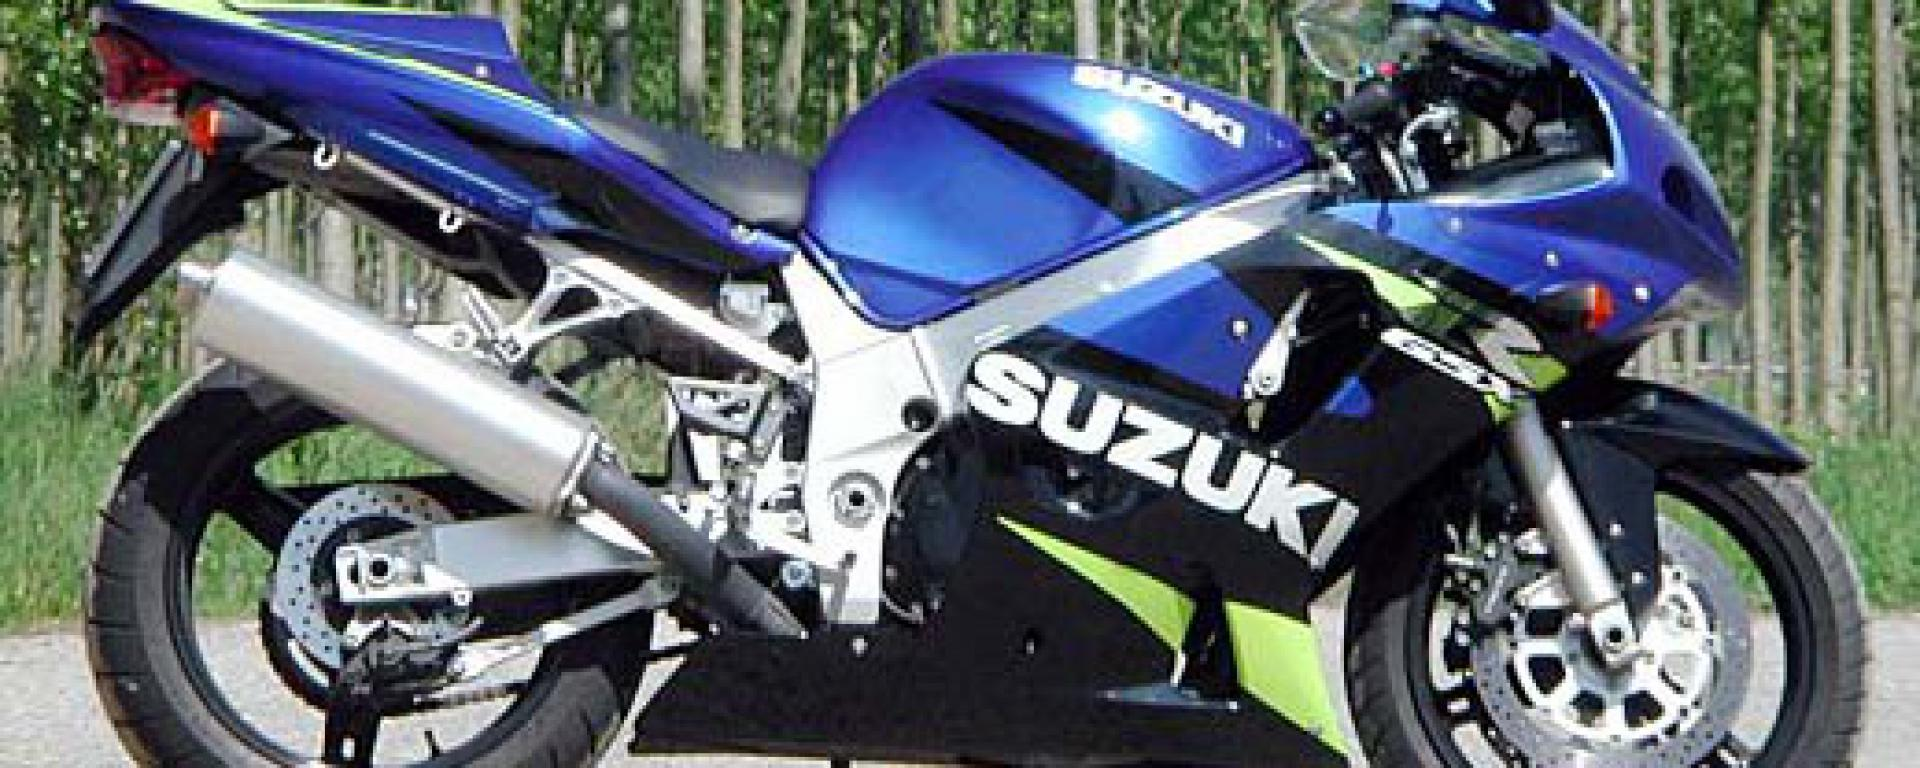 2002 suzuki gsx r 600 pics specs and information. Black Bedroom Furniture Sets. Home Design Ideas